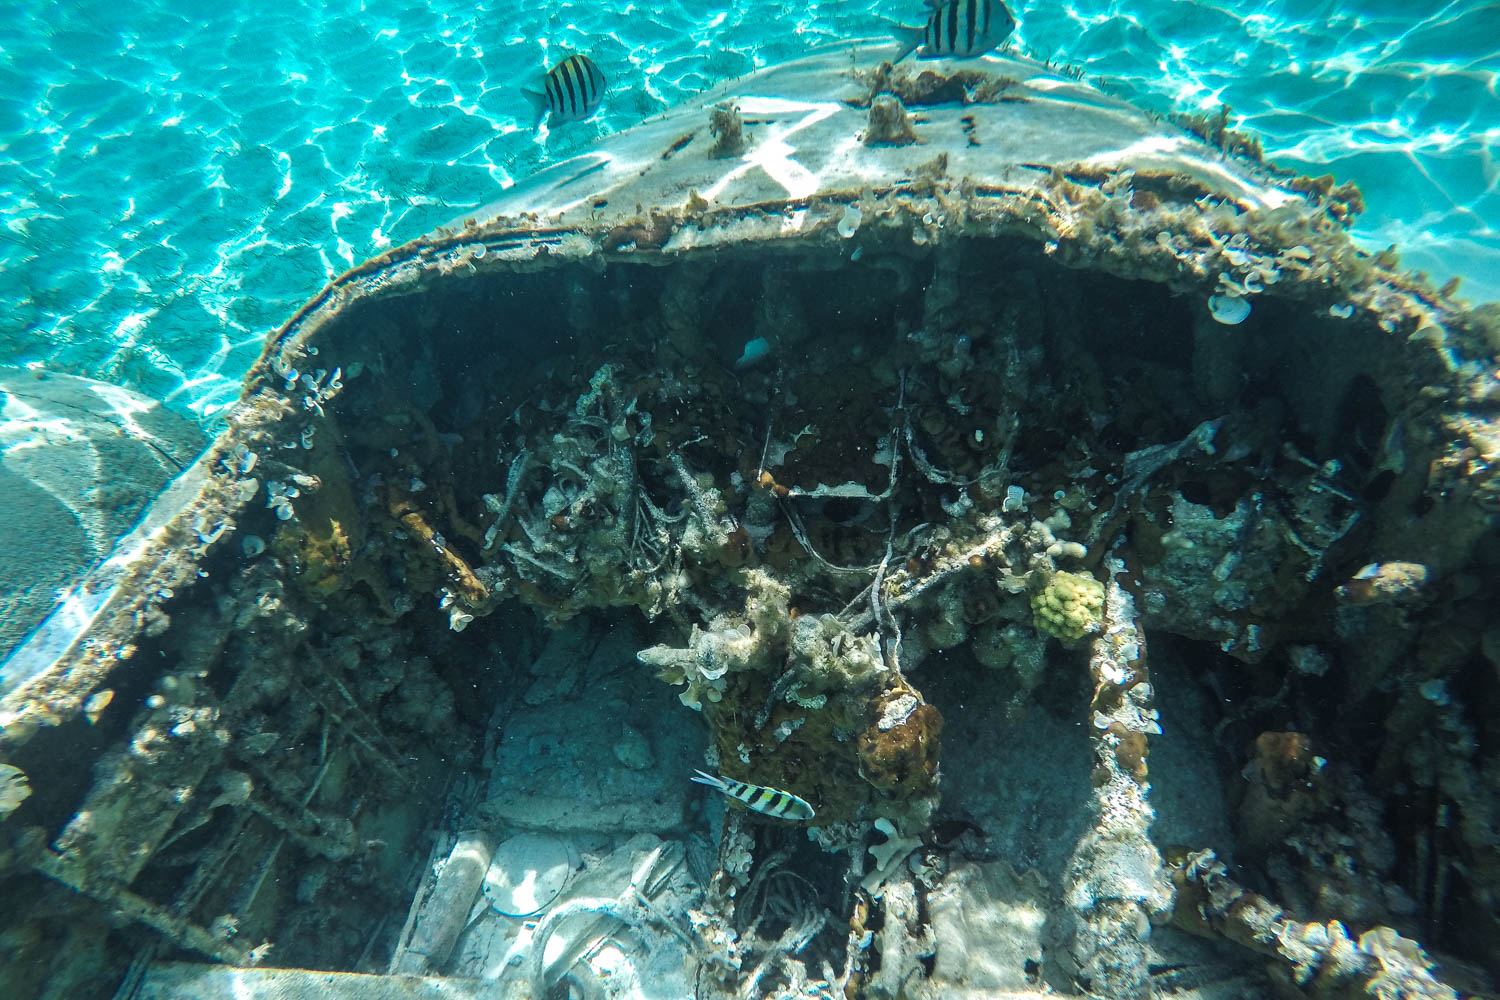 Exuma Plane wreck cockpit is easily accessible and you can take great photos of this Staniel Cay plane wreck on a boat tour or day trip.